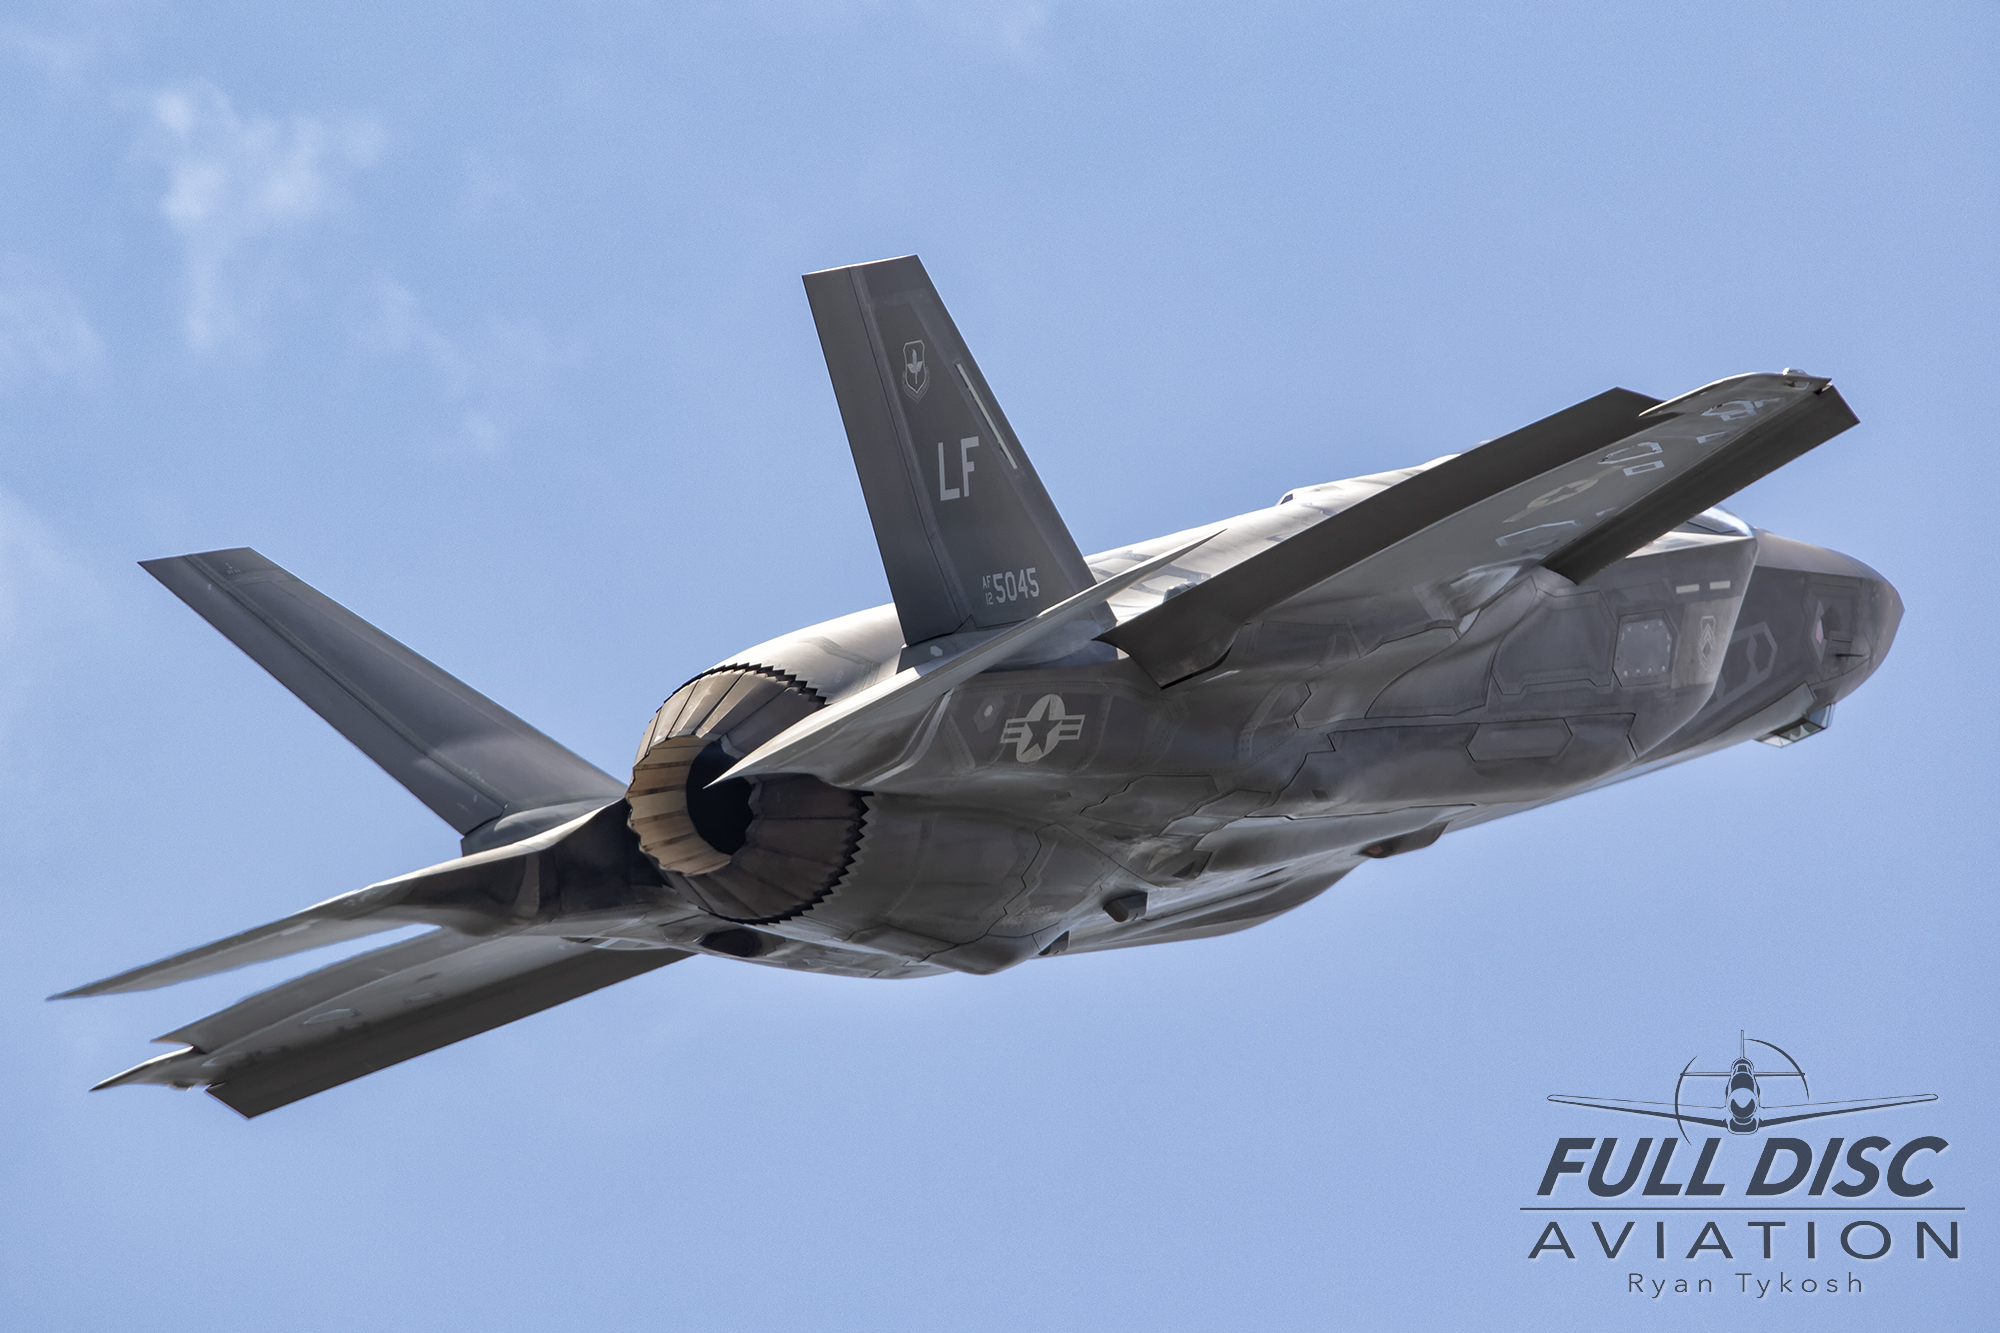 wow19-fdartykosh-f35ademo-highalphawm.jpg